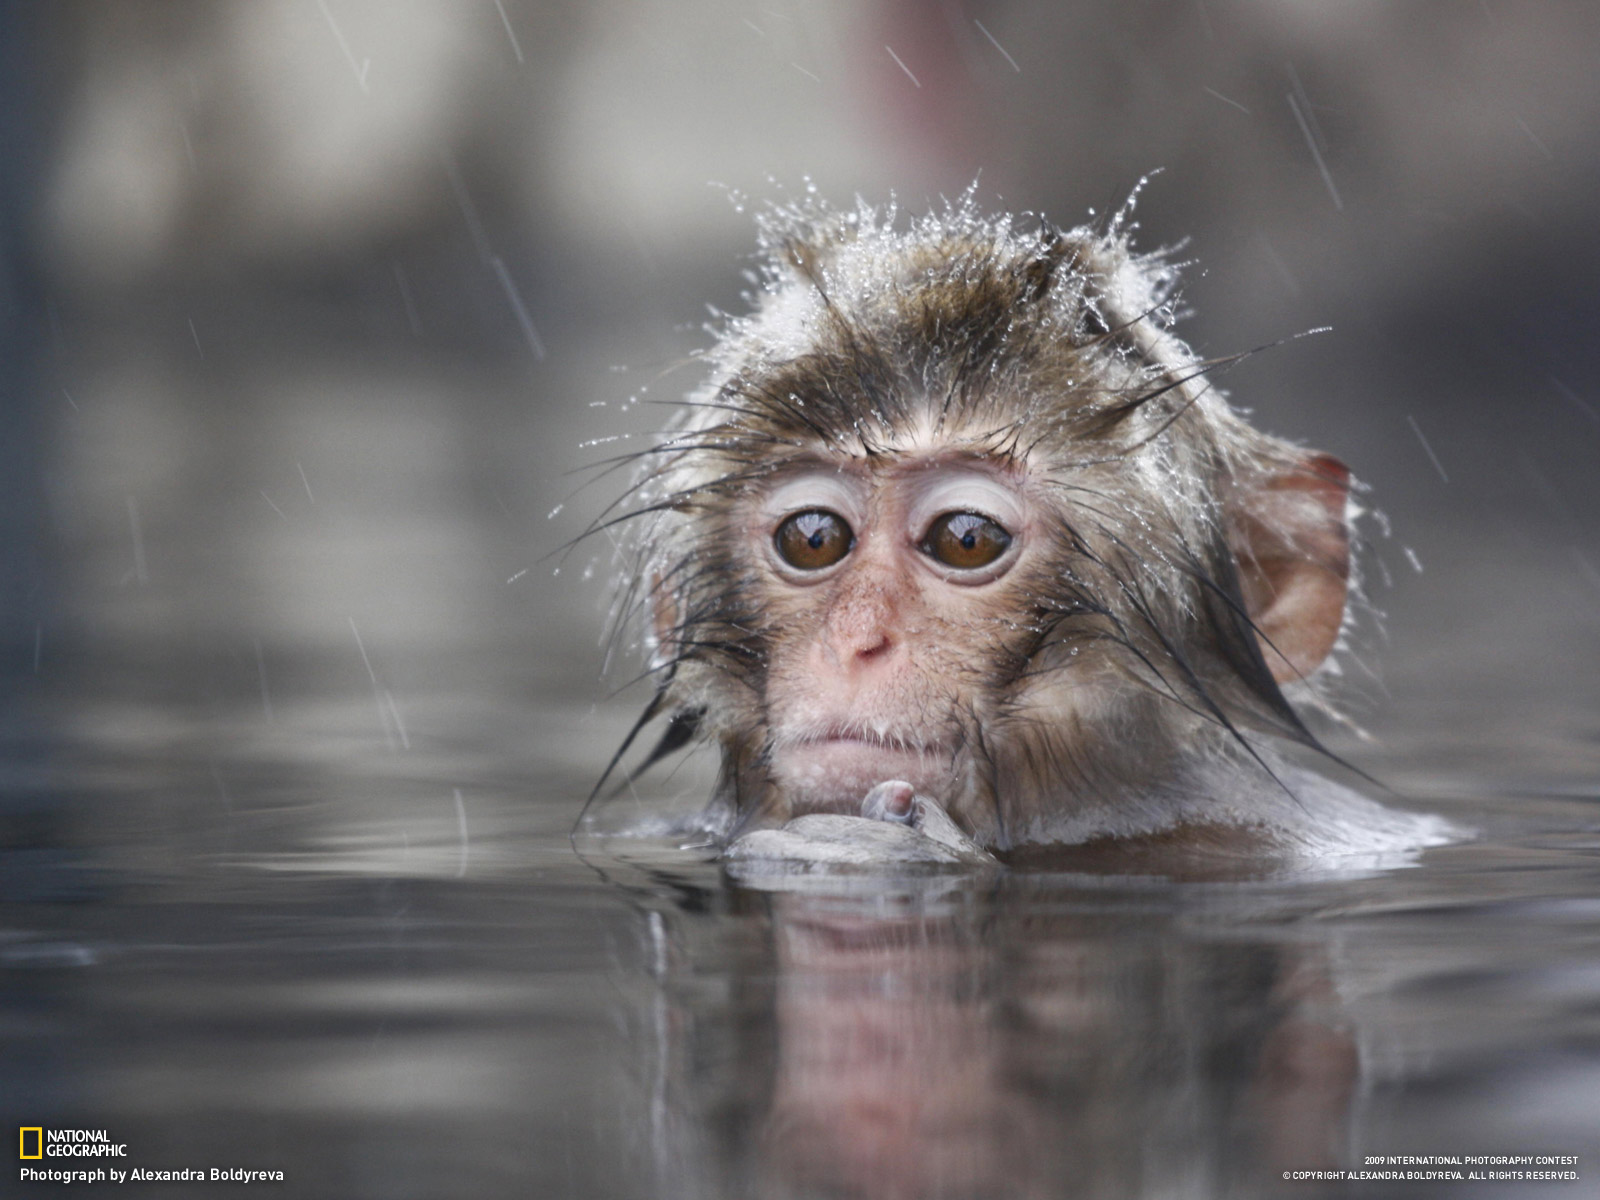 Nature wallpaper: Baby Monkey Wallpapers, Monkey Baby Funny Wallpapers 1229